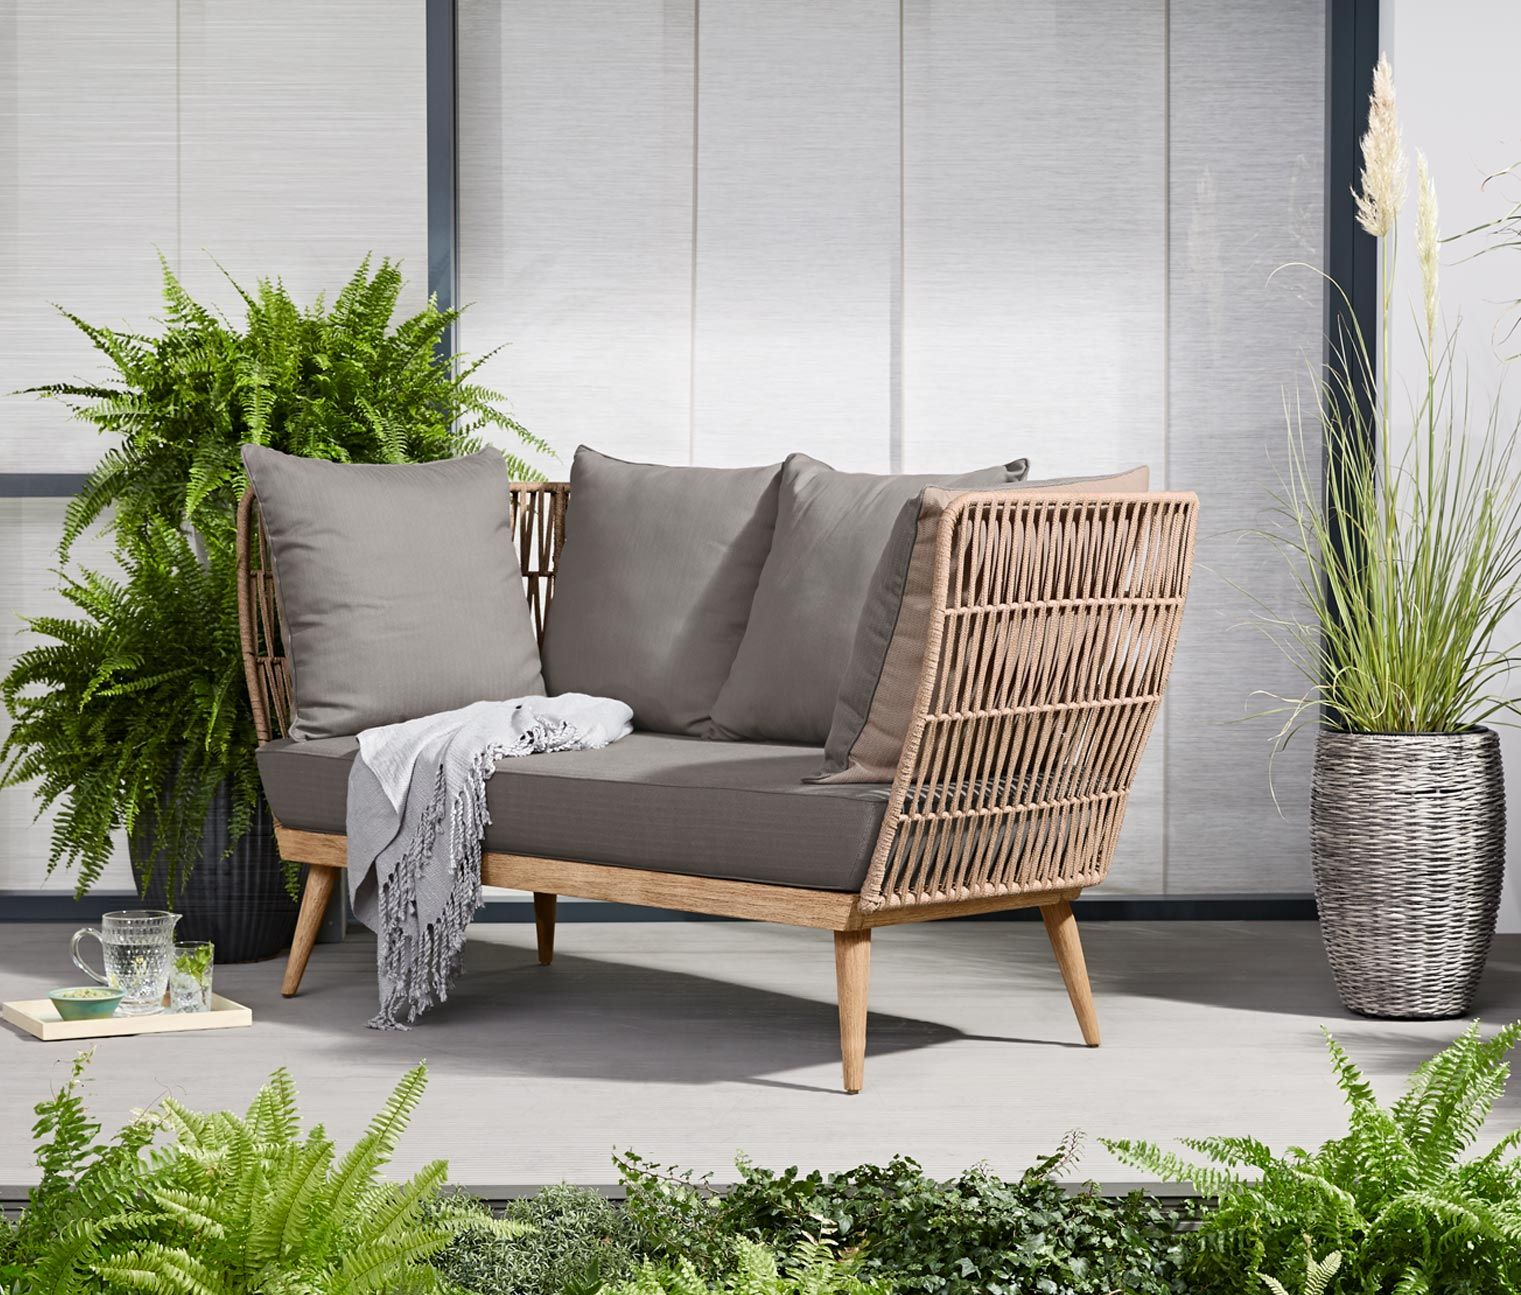 Tchibo Loungemöbel Lounge Sofa Premium Mit Textilgeflecht In 2019 Ideas For My